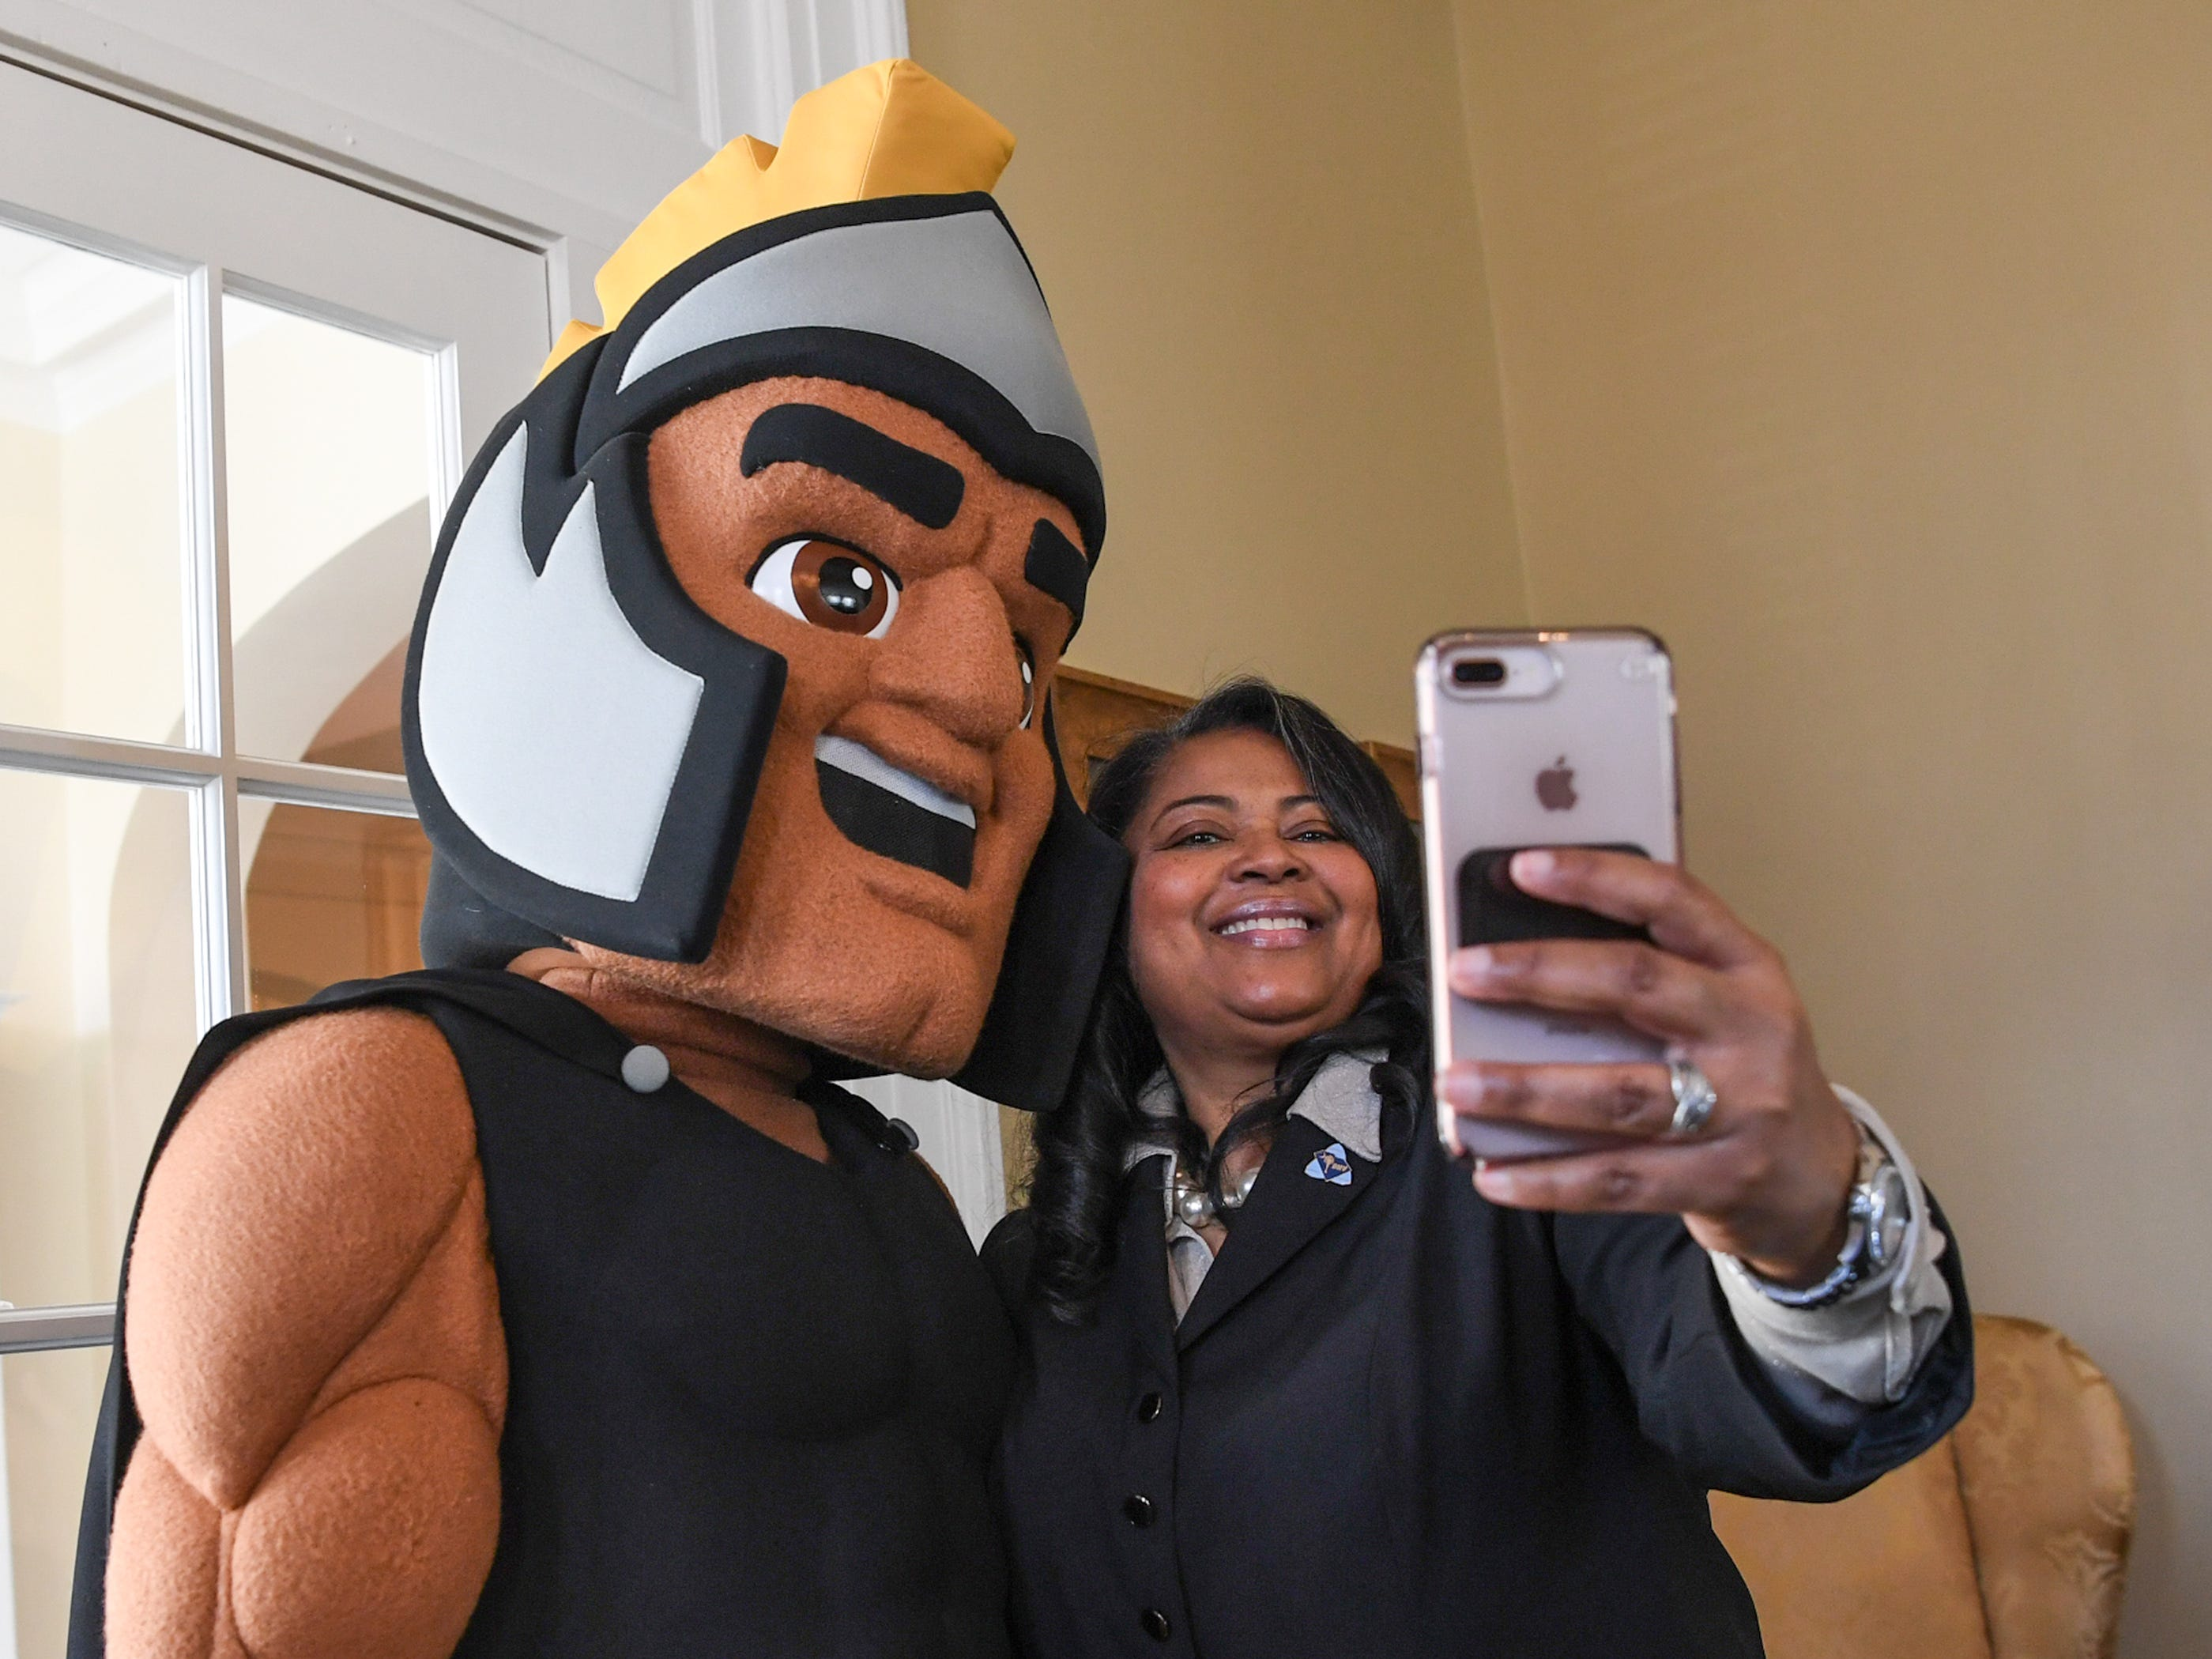 Troy the Trojans mascot of Anderson University poses with Hermena Perkins-Brown, right, plate office director of the South Carolina Department of Motor Vehicles, before showing other officials a new personalized license plate during a press conference at the campus administration building in Anderson Friday morning. The University plate, along with Clemson University and the University of South Carolina, are the only college or university plates available to personalize, said Perkins-Brown. The Anderson University plates can be applied for starting Monday, January 28, 2019 in person, not online, for $100 and an added fee if personalizing.